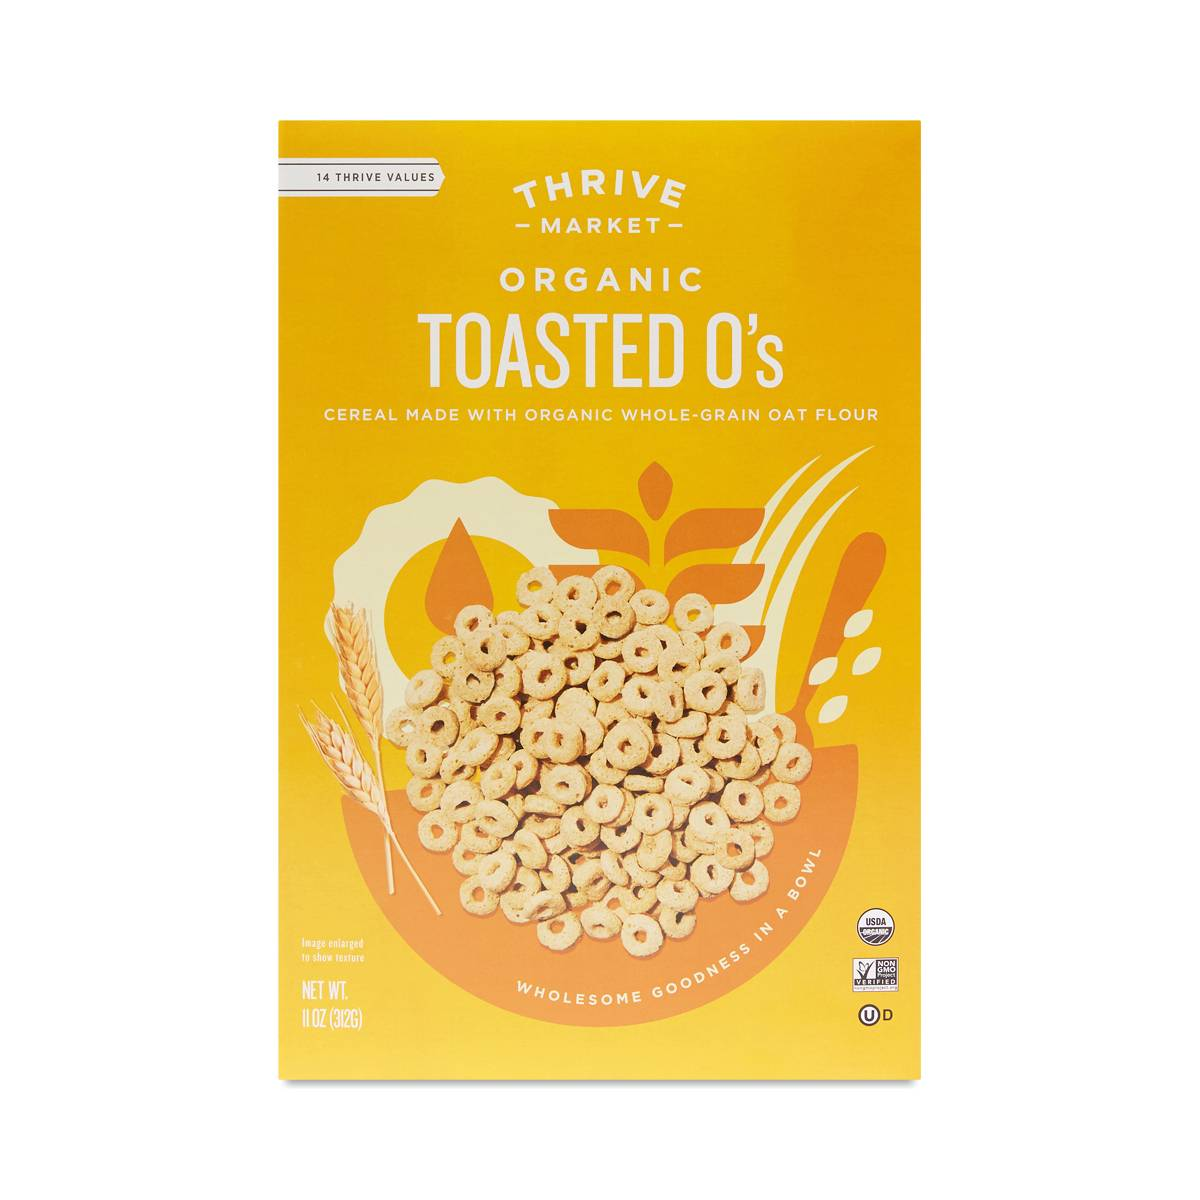 Toasted O's Organic Cereal